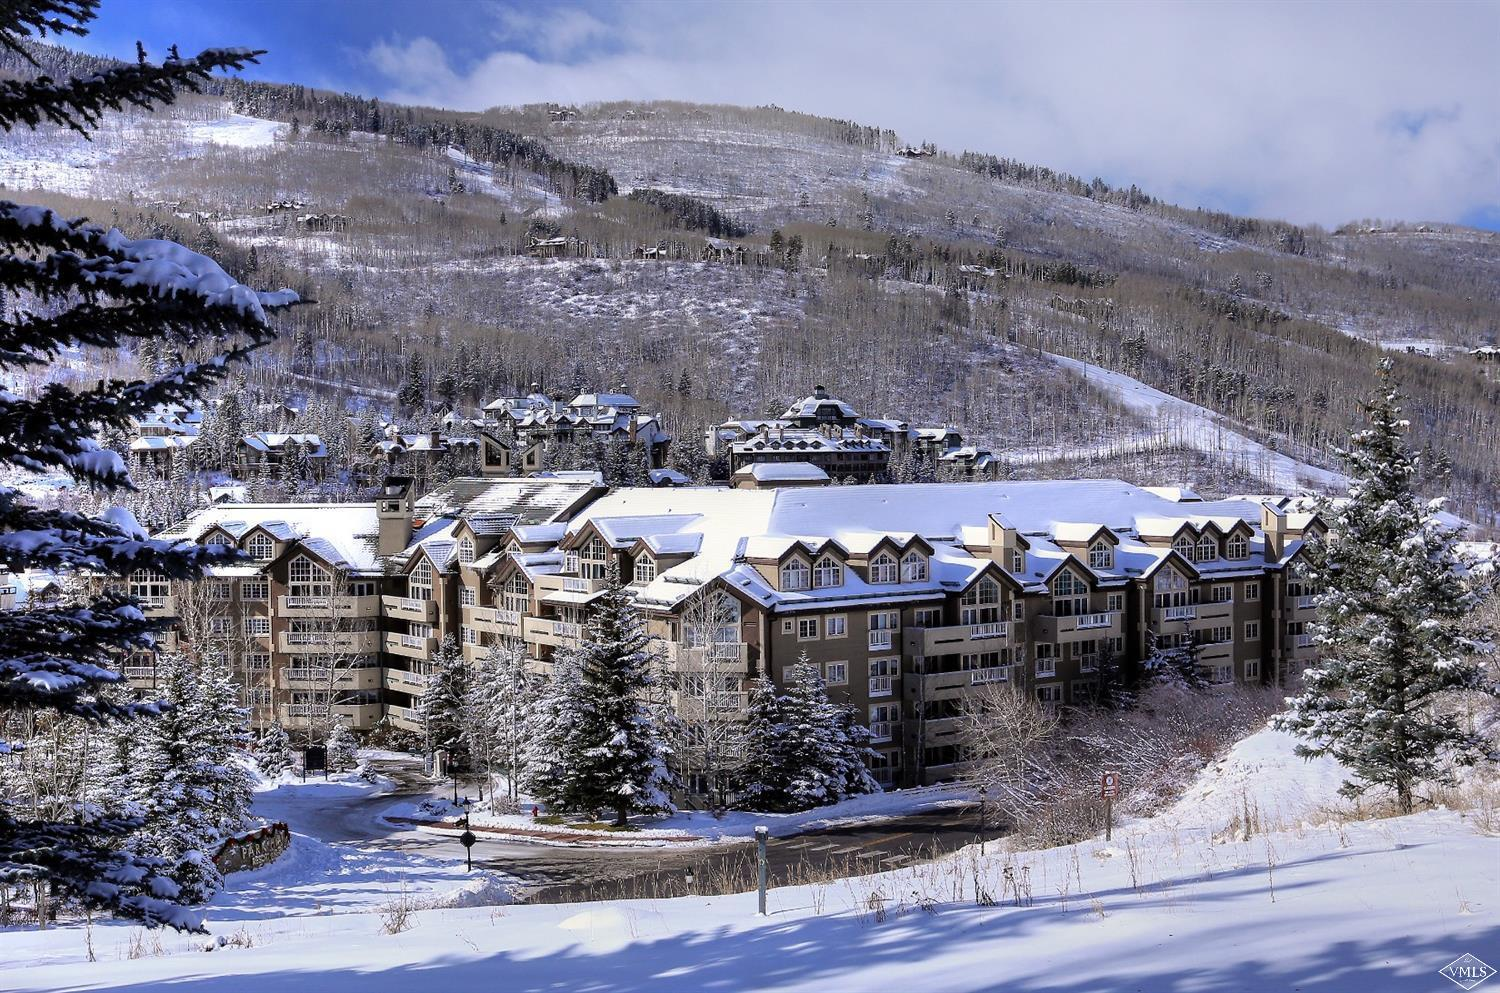 210 Week 14 Offerson Road, 408, Beaver Creek, CO 81620 Property Photo